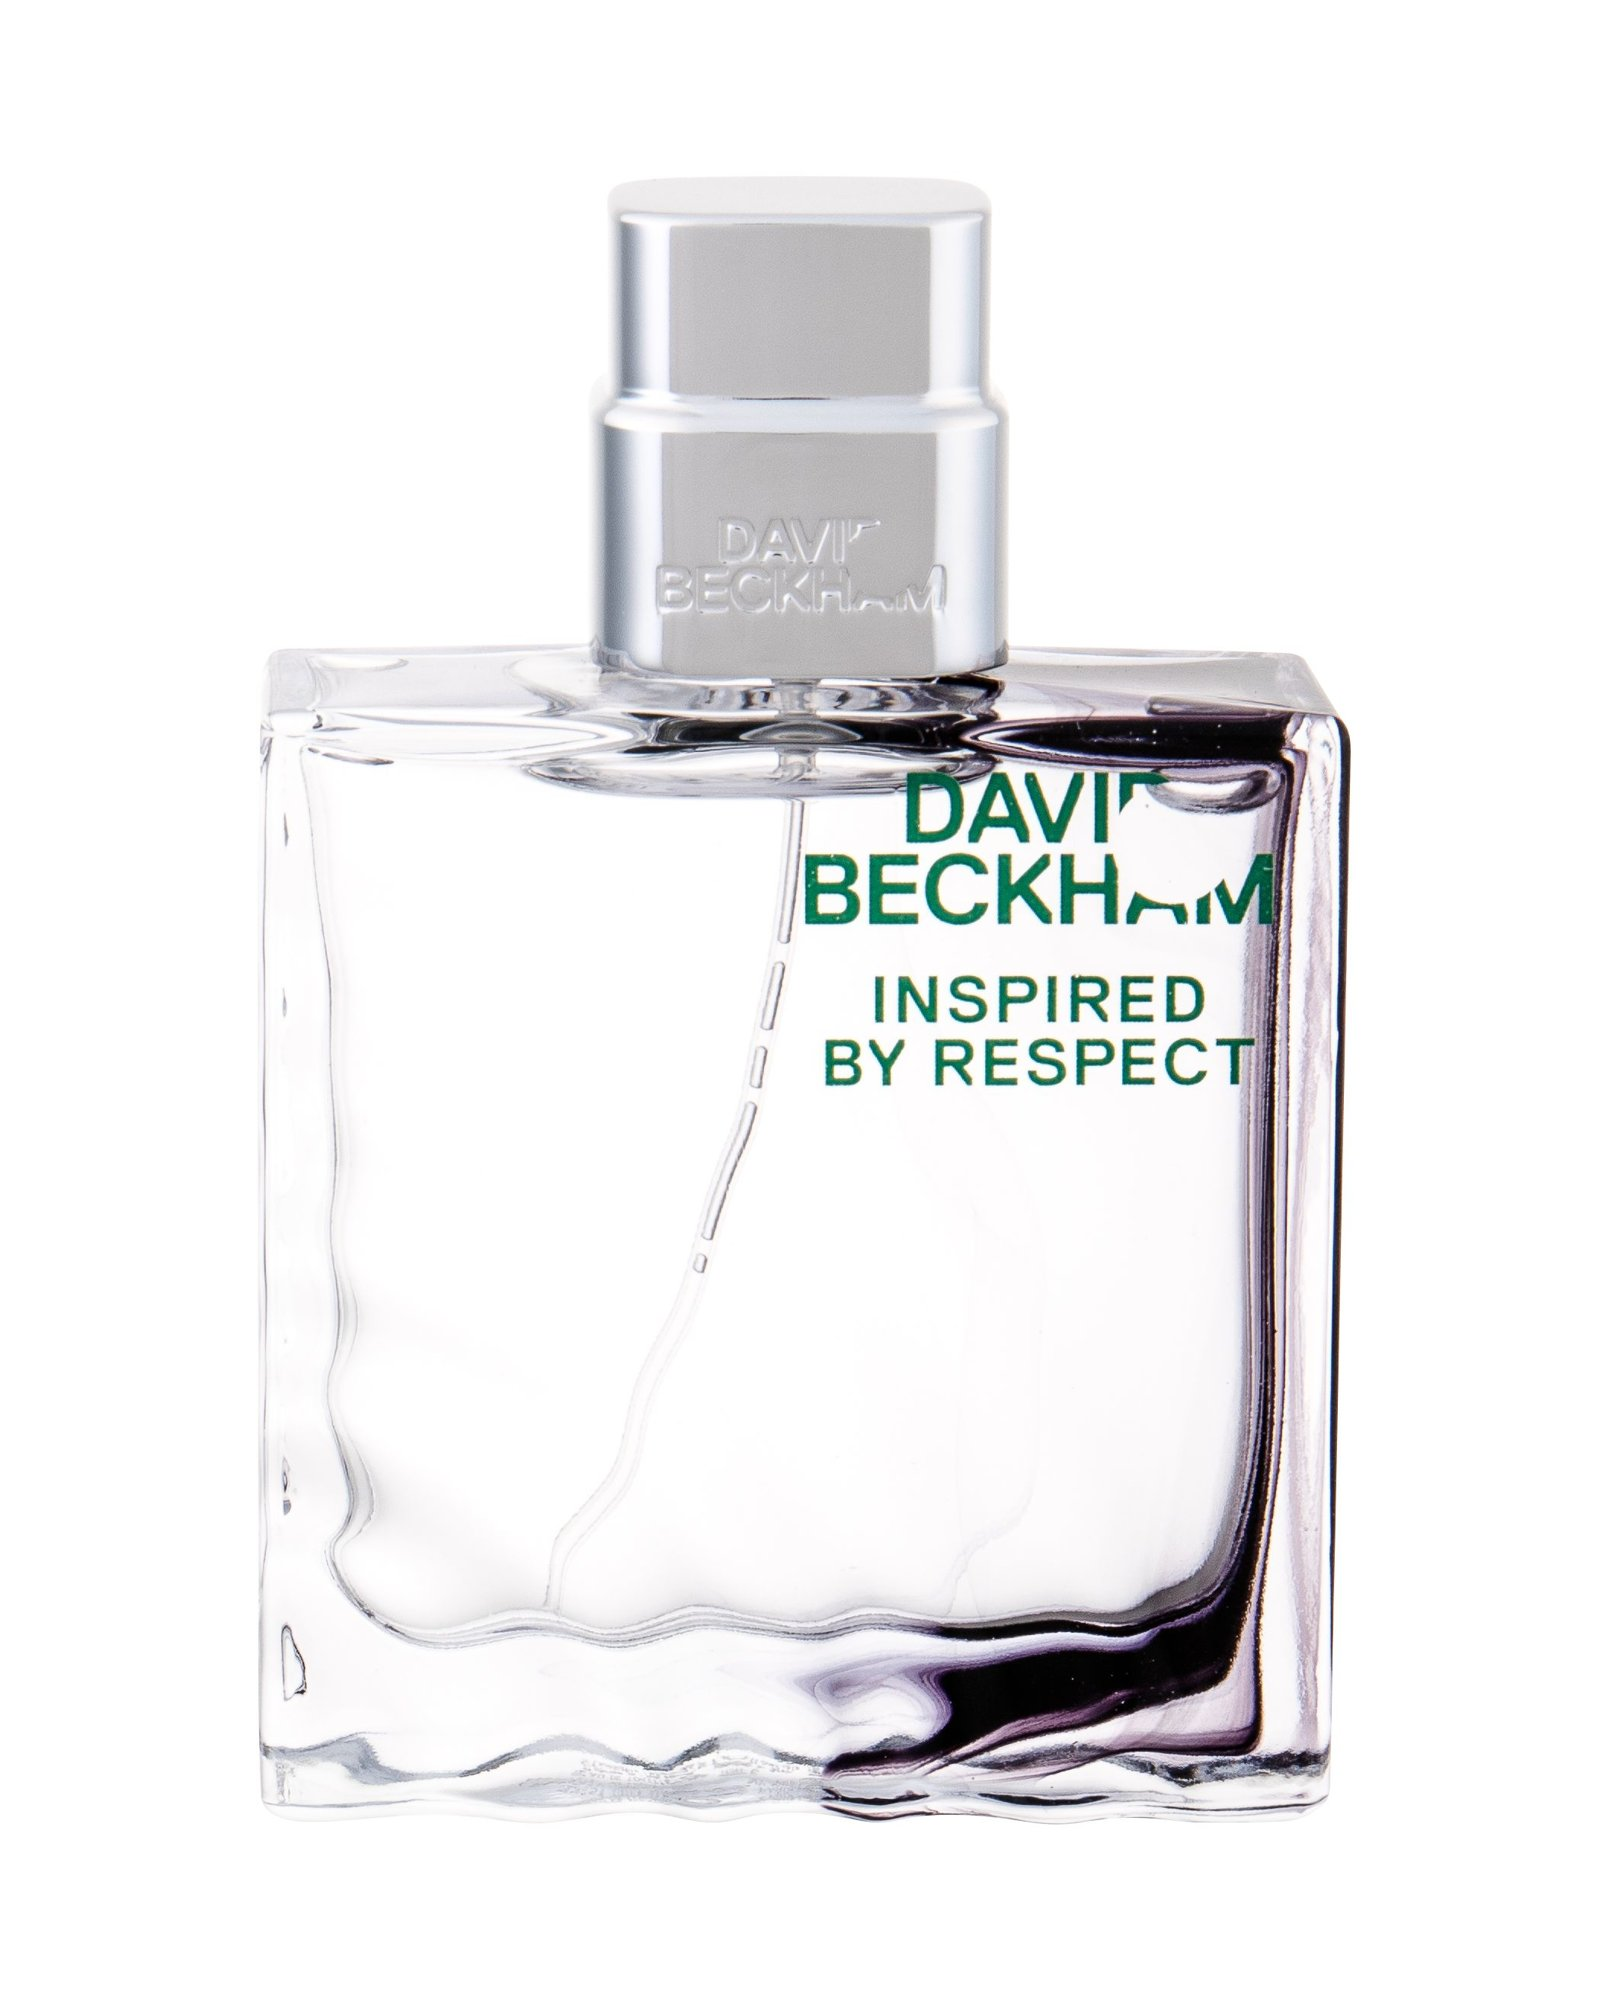 David Beckham Inspired by Respect  Toaletní voda, M, 60 ml